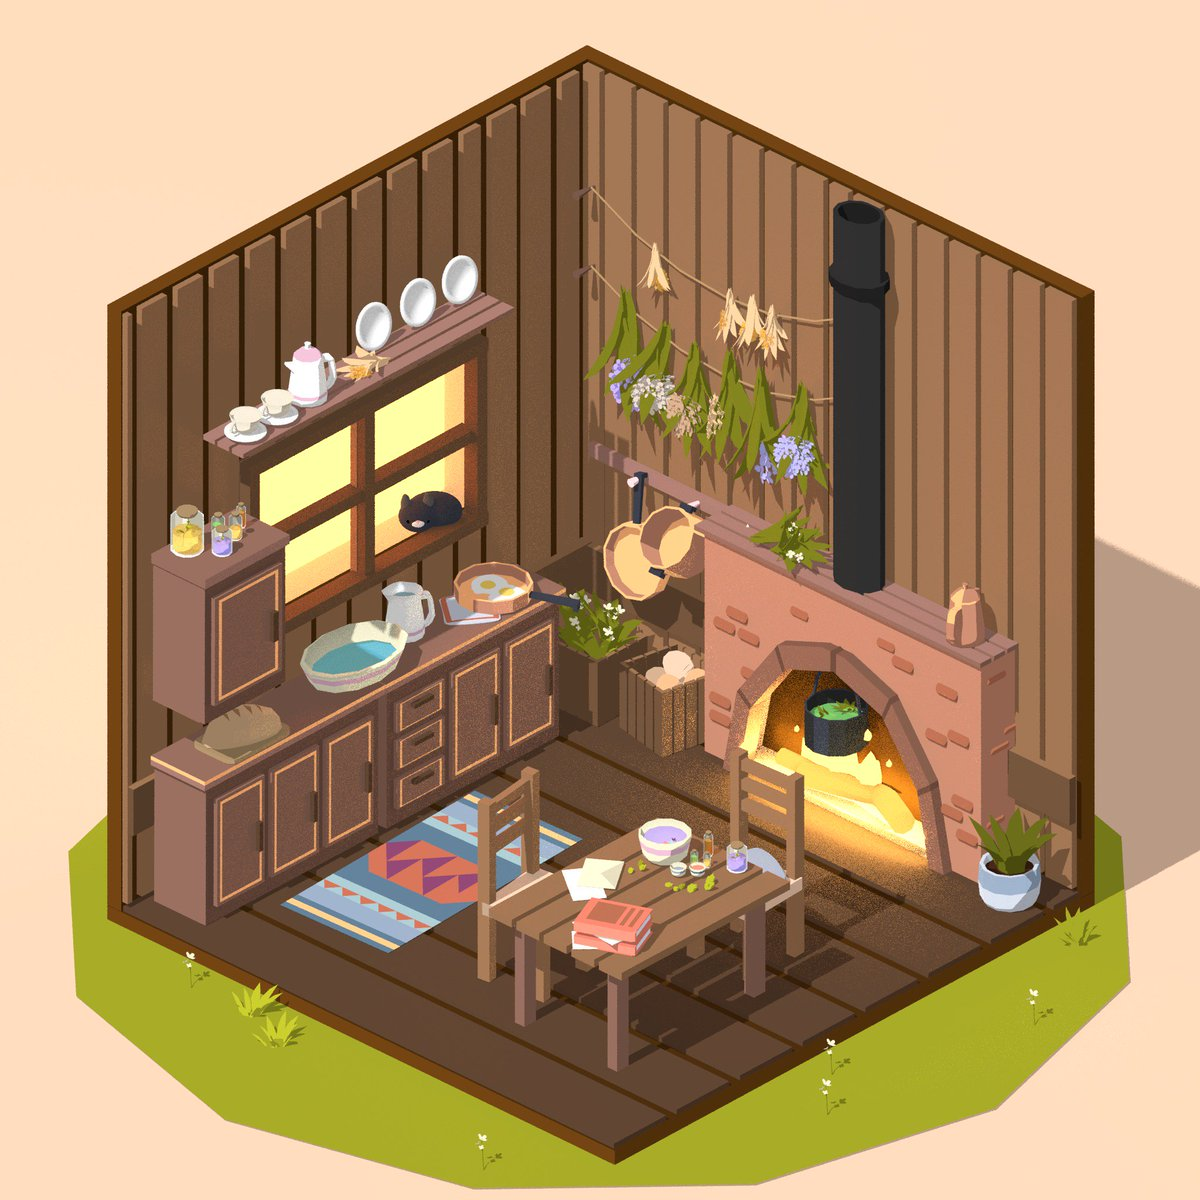 Cabin series : Witch&#39;s Kitchen :3 #lowpoly #Blender3D #3dmodeling<br>http://pic.twitter.com/ar5c1AIXfG